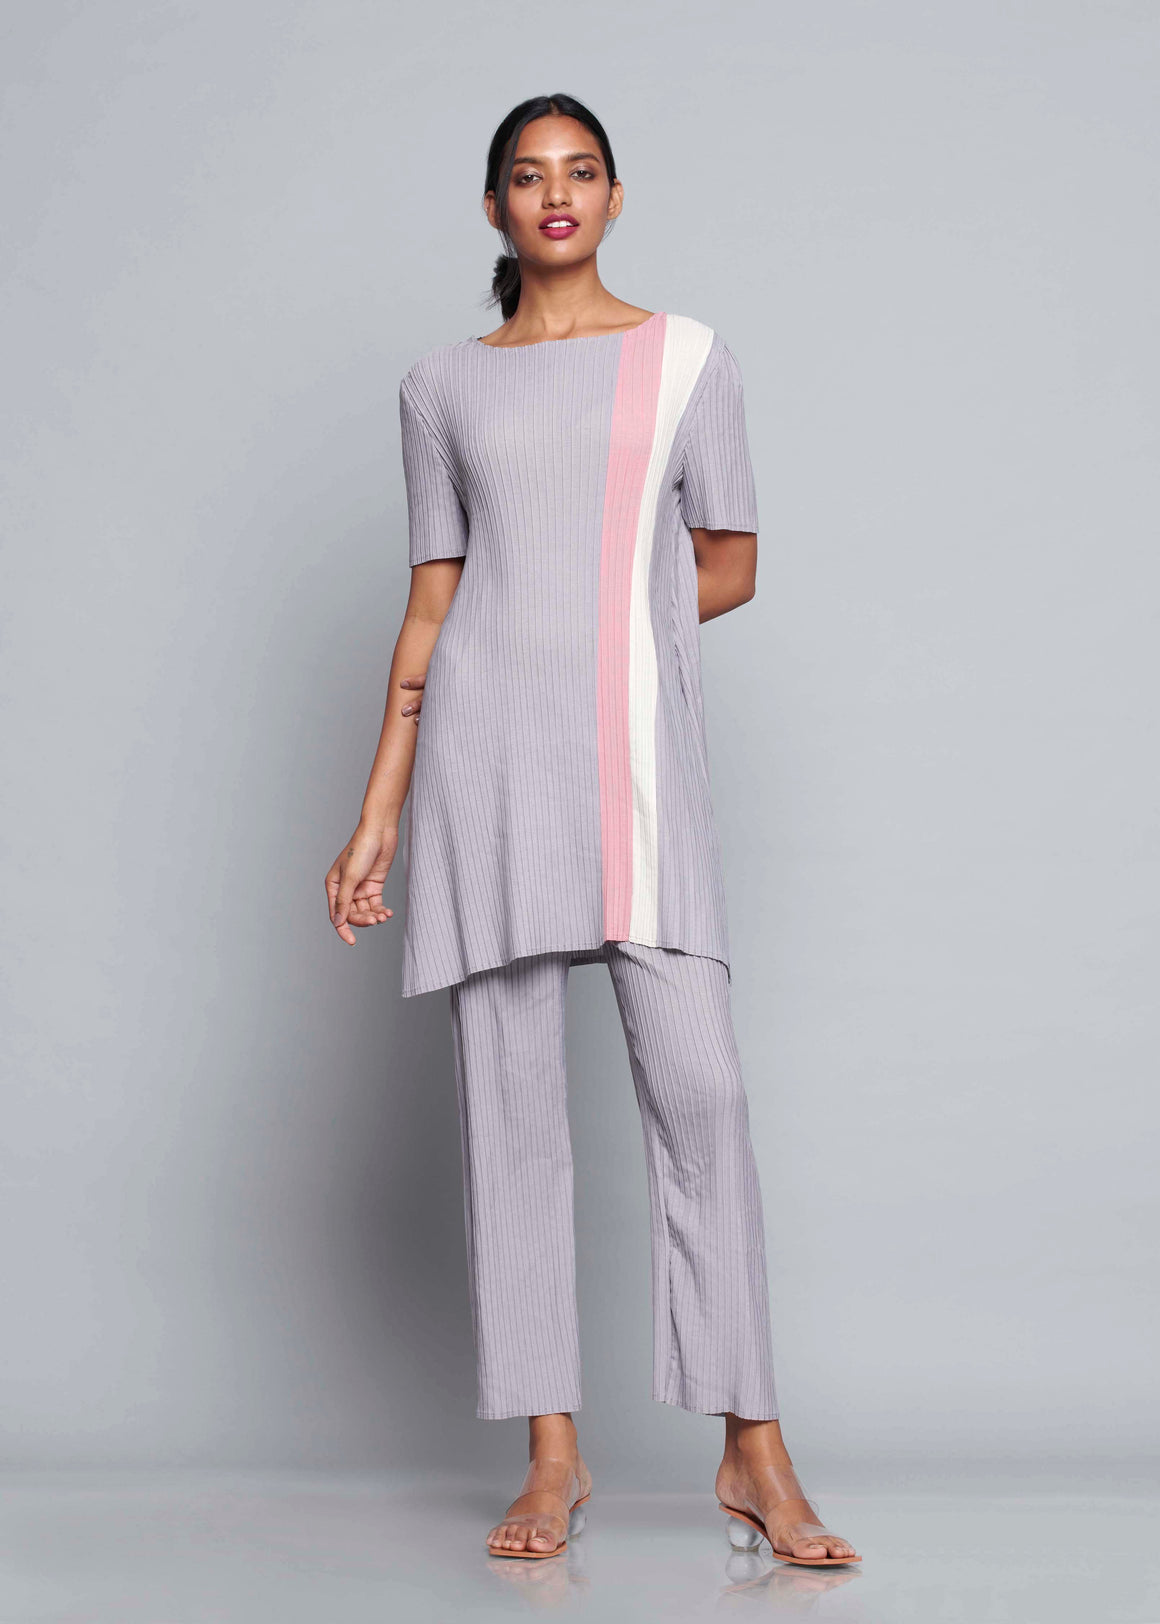 Stripe Colourblock Tunic Sets - Grey Pink Ivory